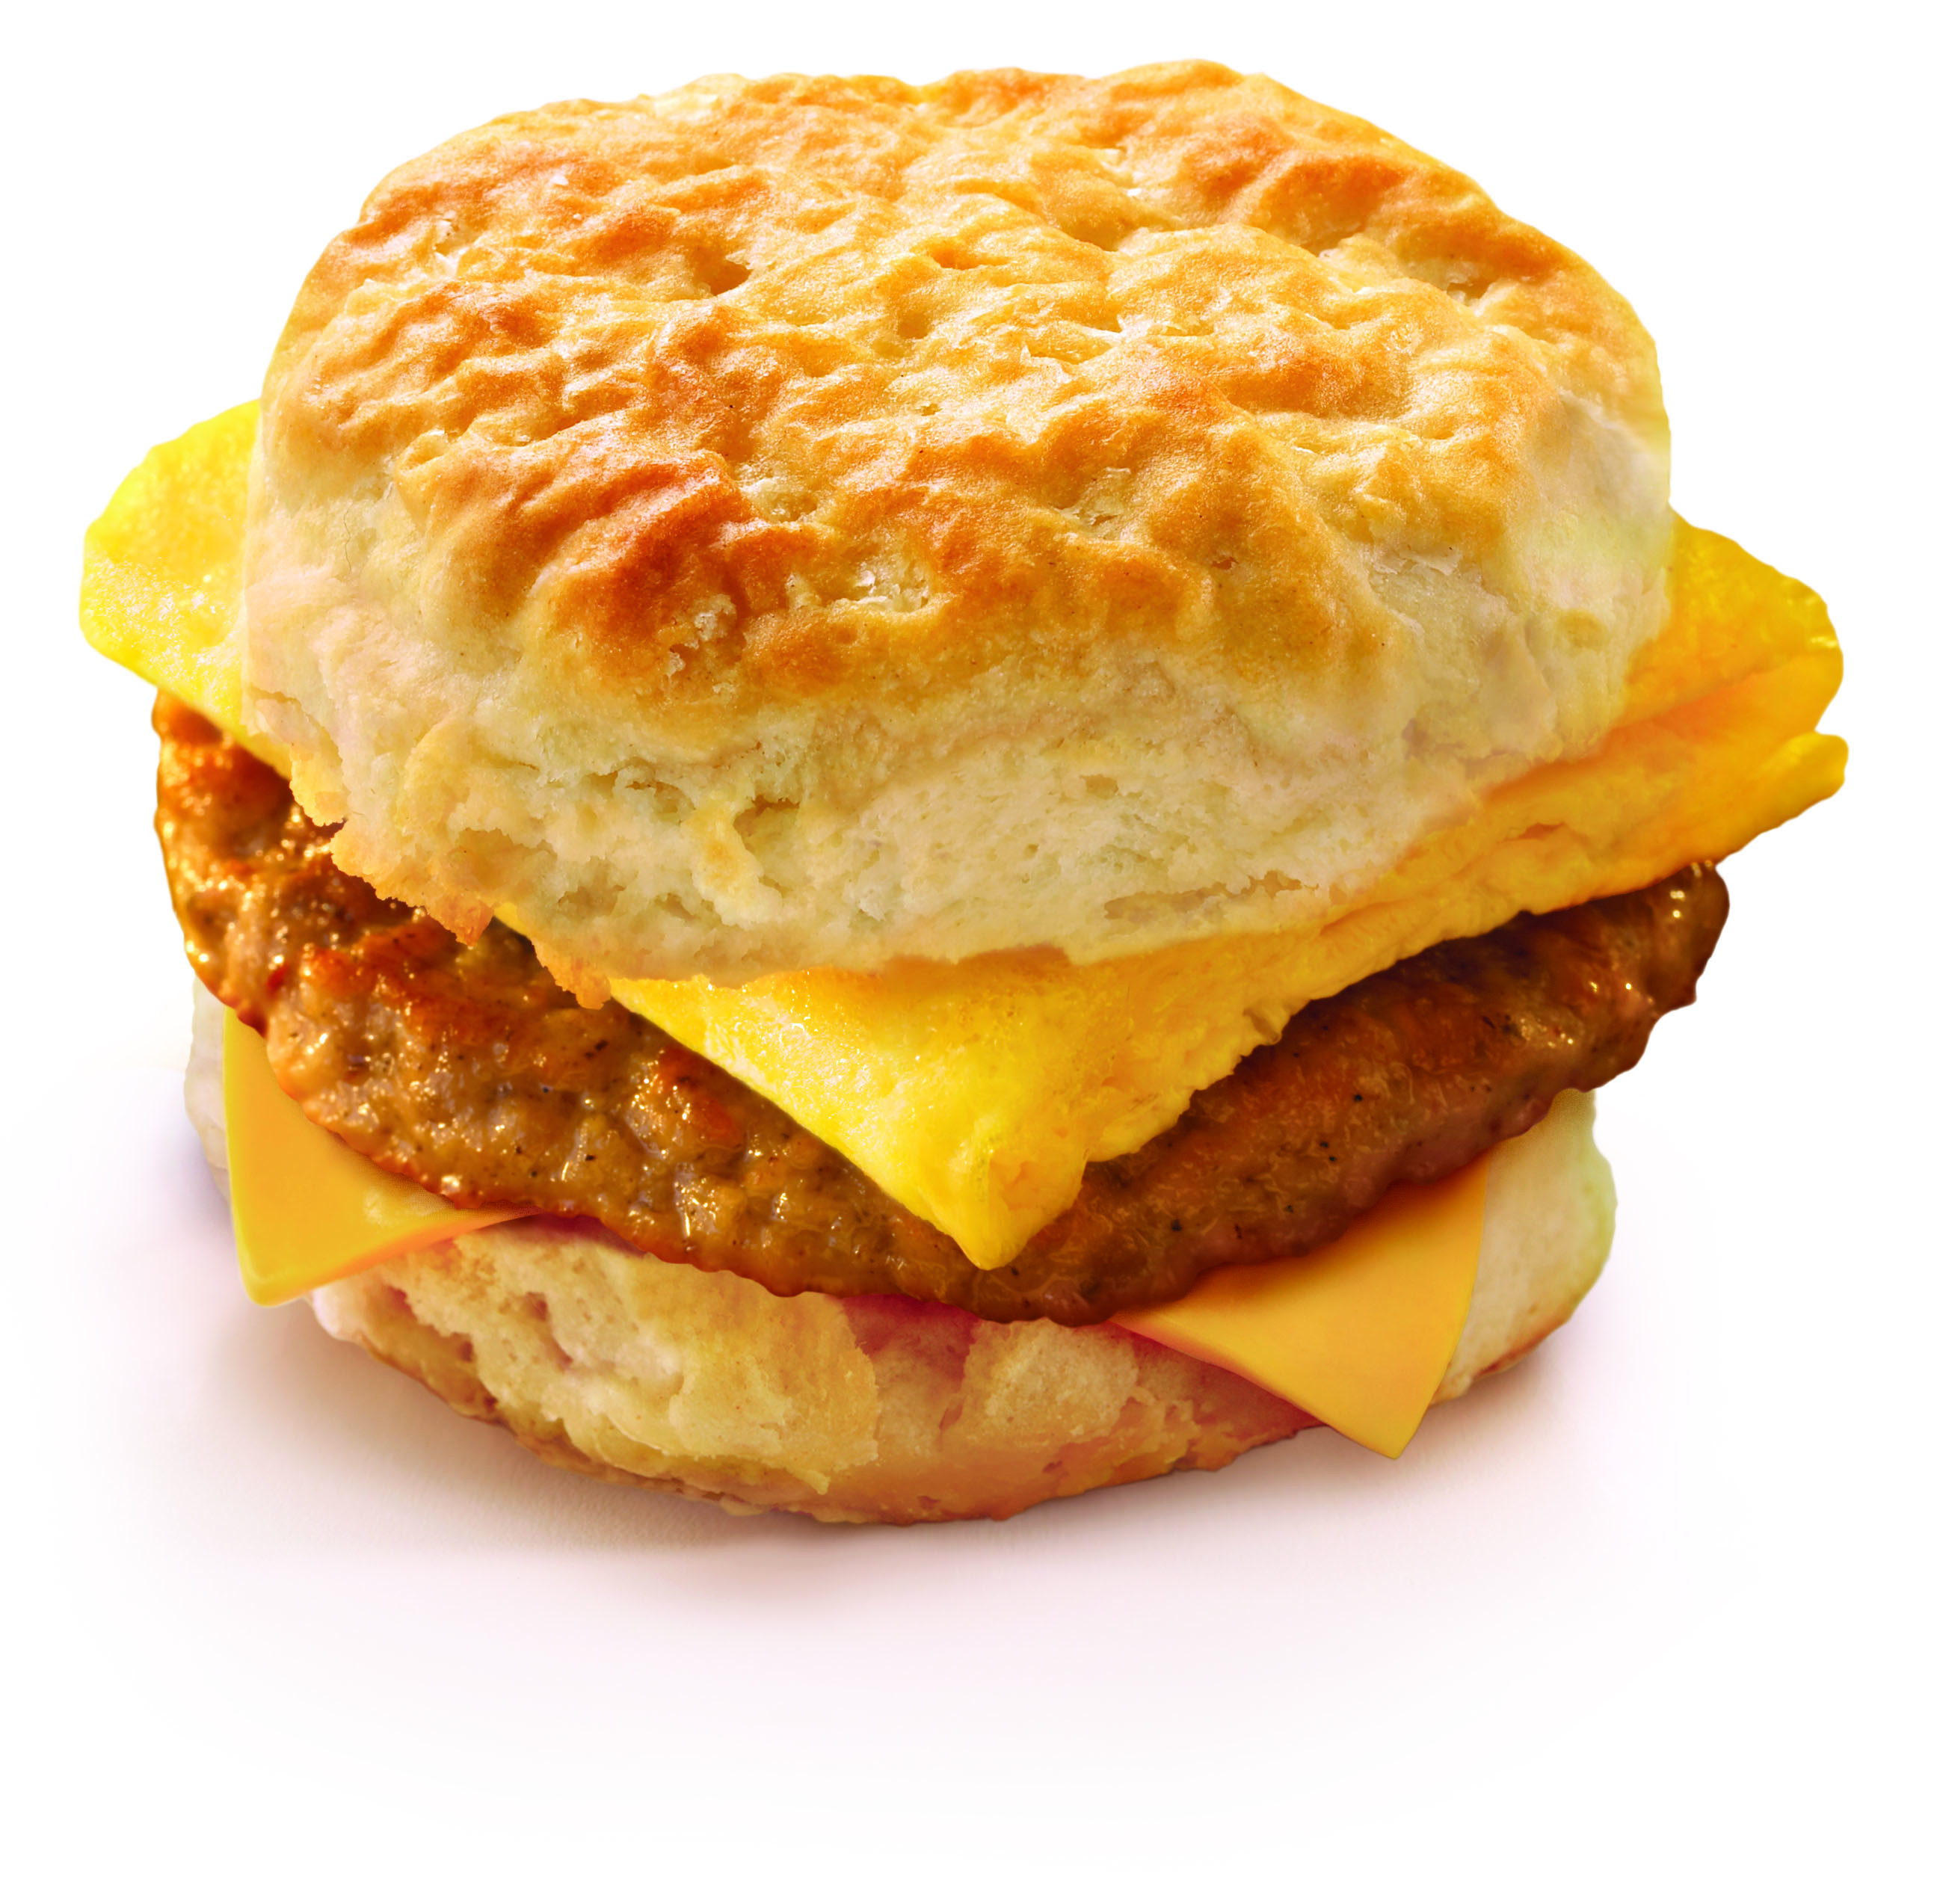 jimmy dean sausage egg and cheese biscuit